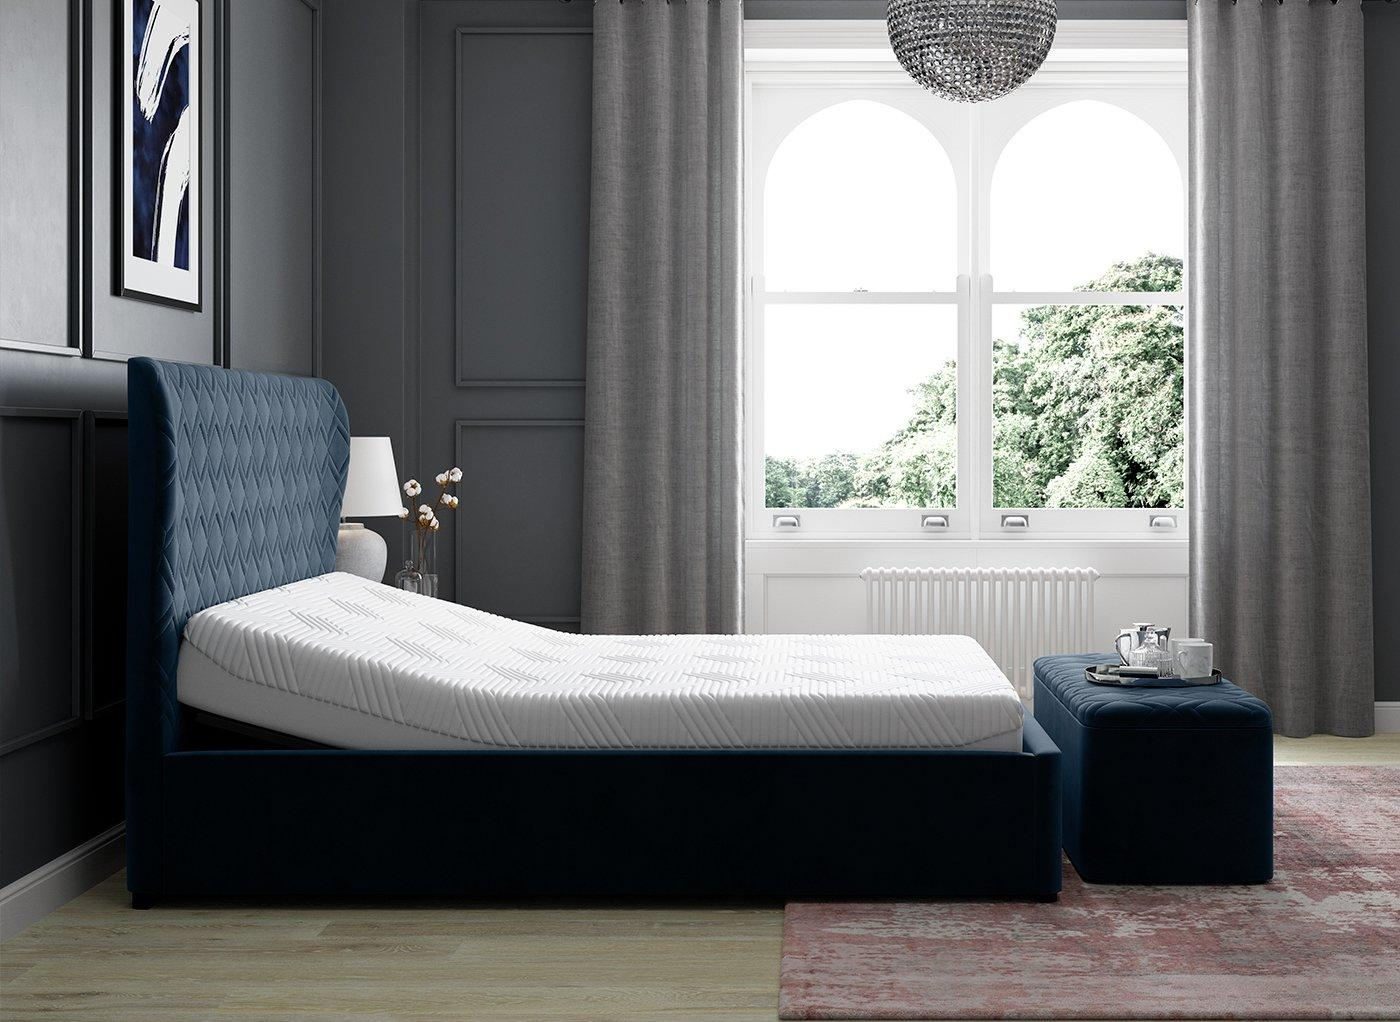 neva-sleepmotion-adjustable-upholstered-bed-frame